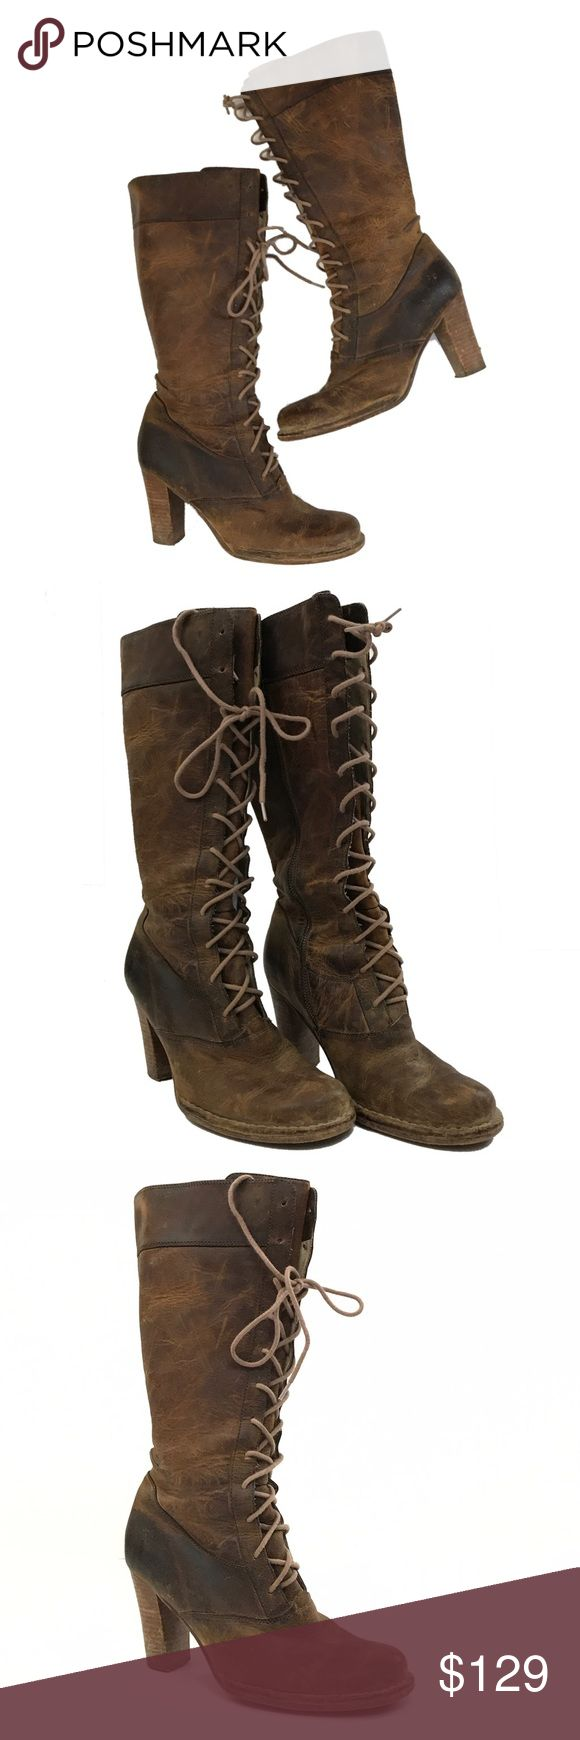 Frye Villager Lace Up Tall Brown Boots Size 8.5 I love these boots! These boots have a cool, vintage vibe. Rugged yet chic.  Knee-high Frye boot features lace-up detail in front with a side. Rounded toe with contrast topstitching.  Stacked rubber heel measures 3.5 inches. Fits true to size. Frye Shoes Lace Up Boots